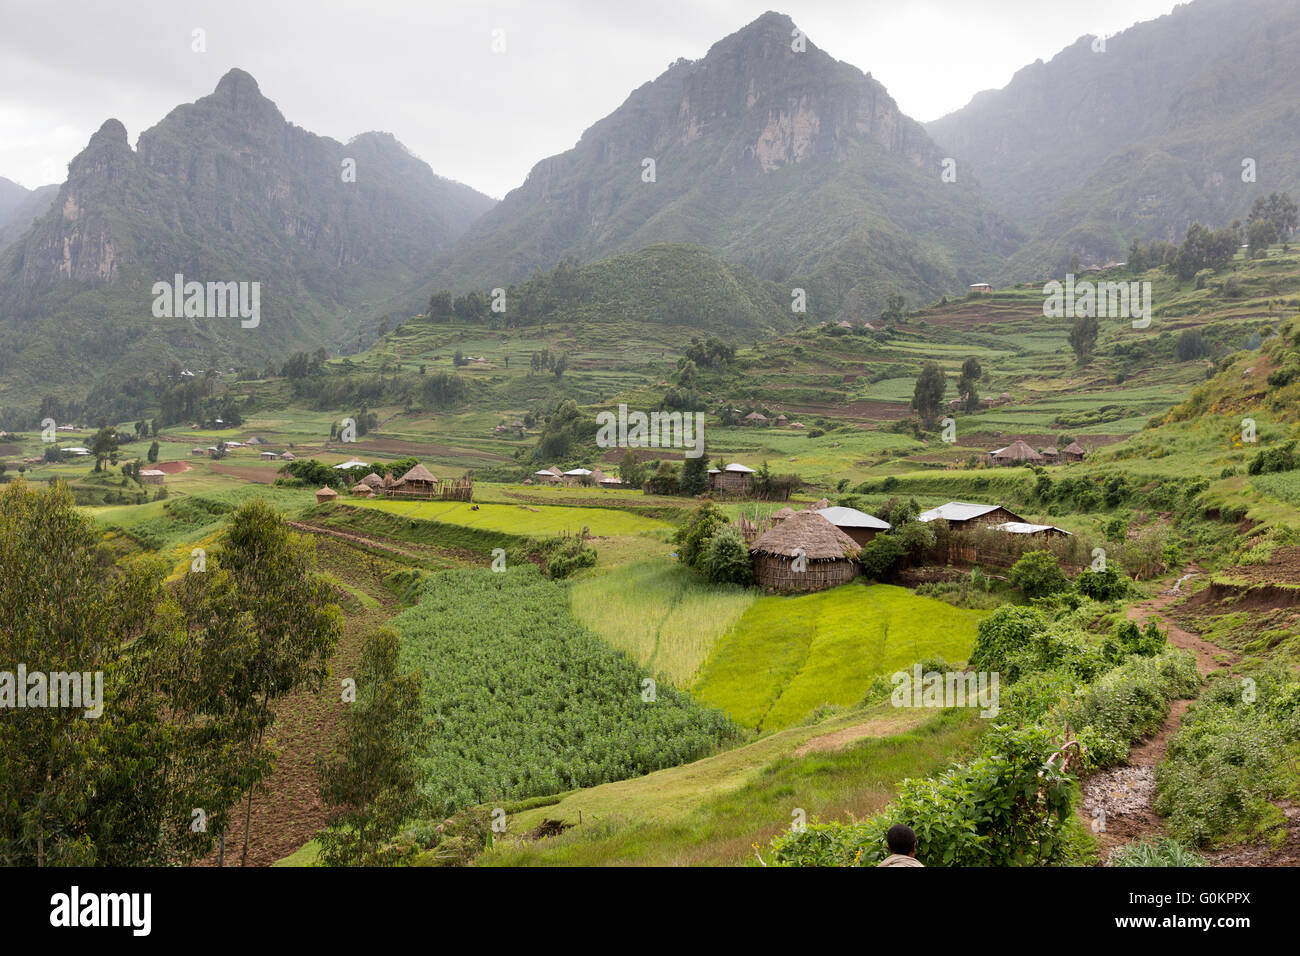 Ankober Woring Mesche Kebele, North Shewa,  Ethiopia, October 2013: steep slopes have been partly terraced. - Stock Image